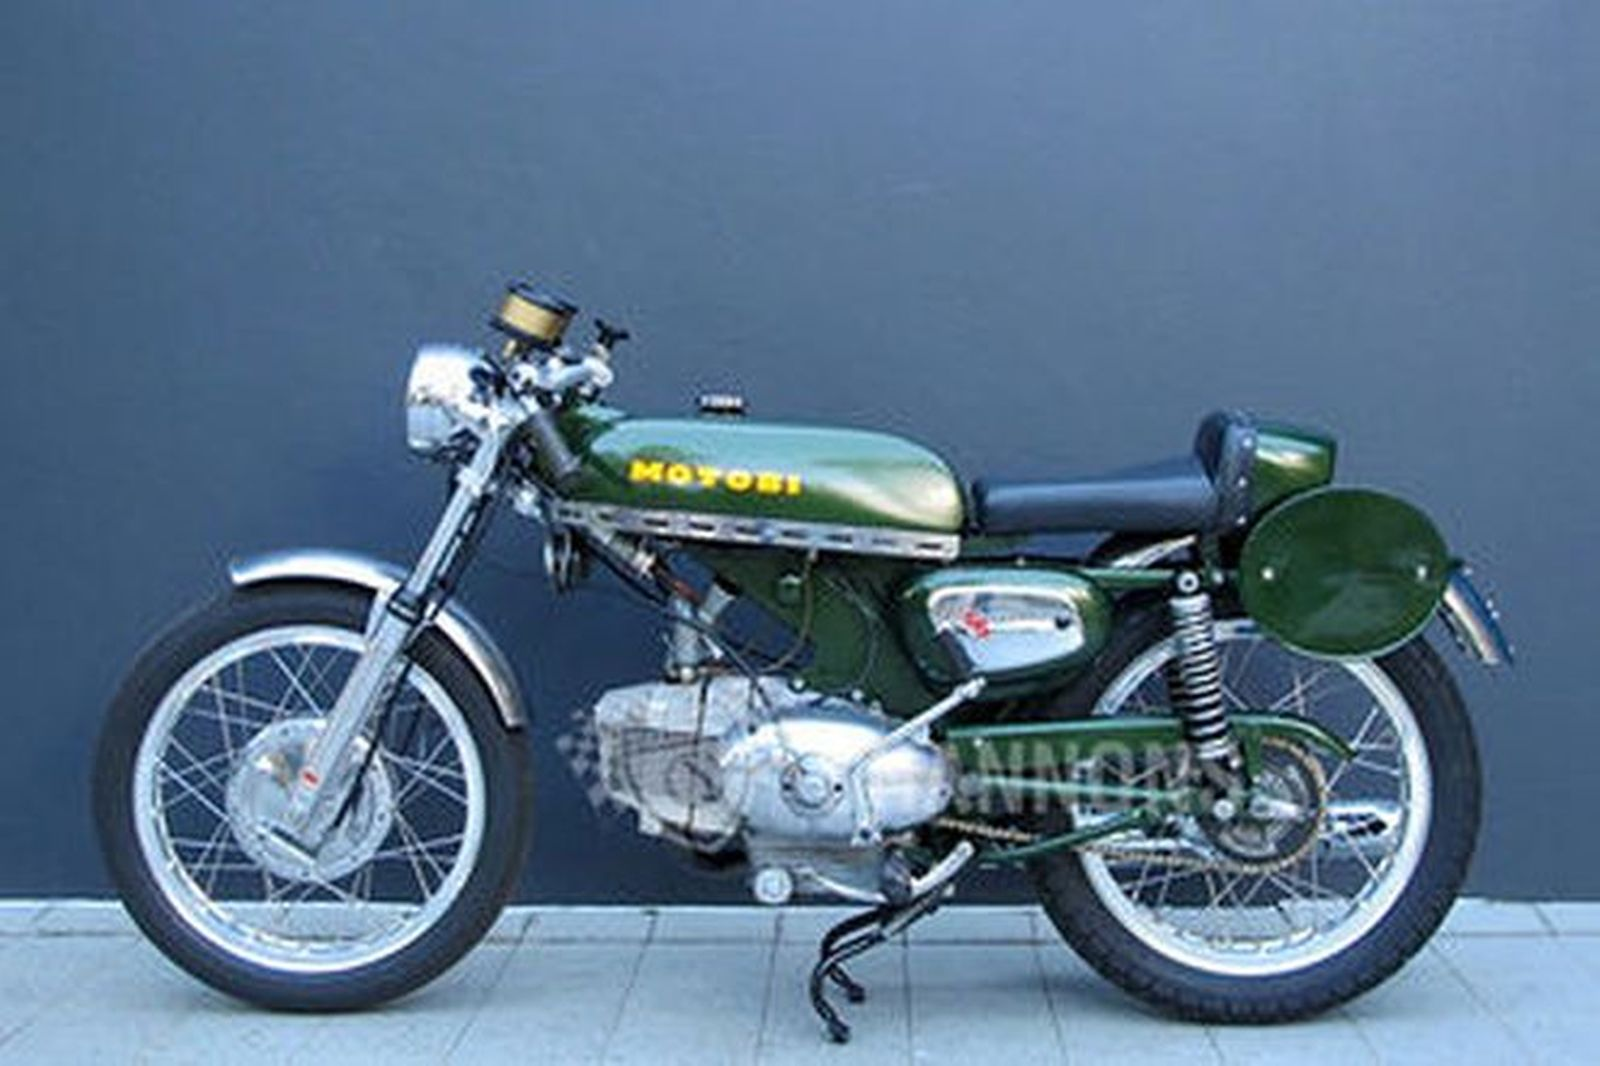 Sold Benelli Motobi Sports Special 250cc Motorcycle